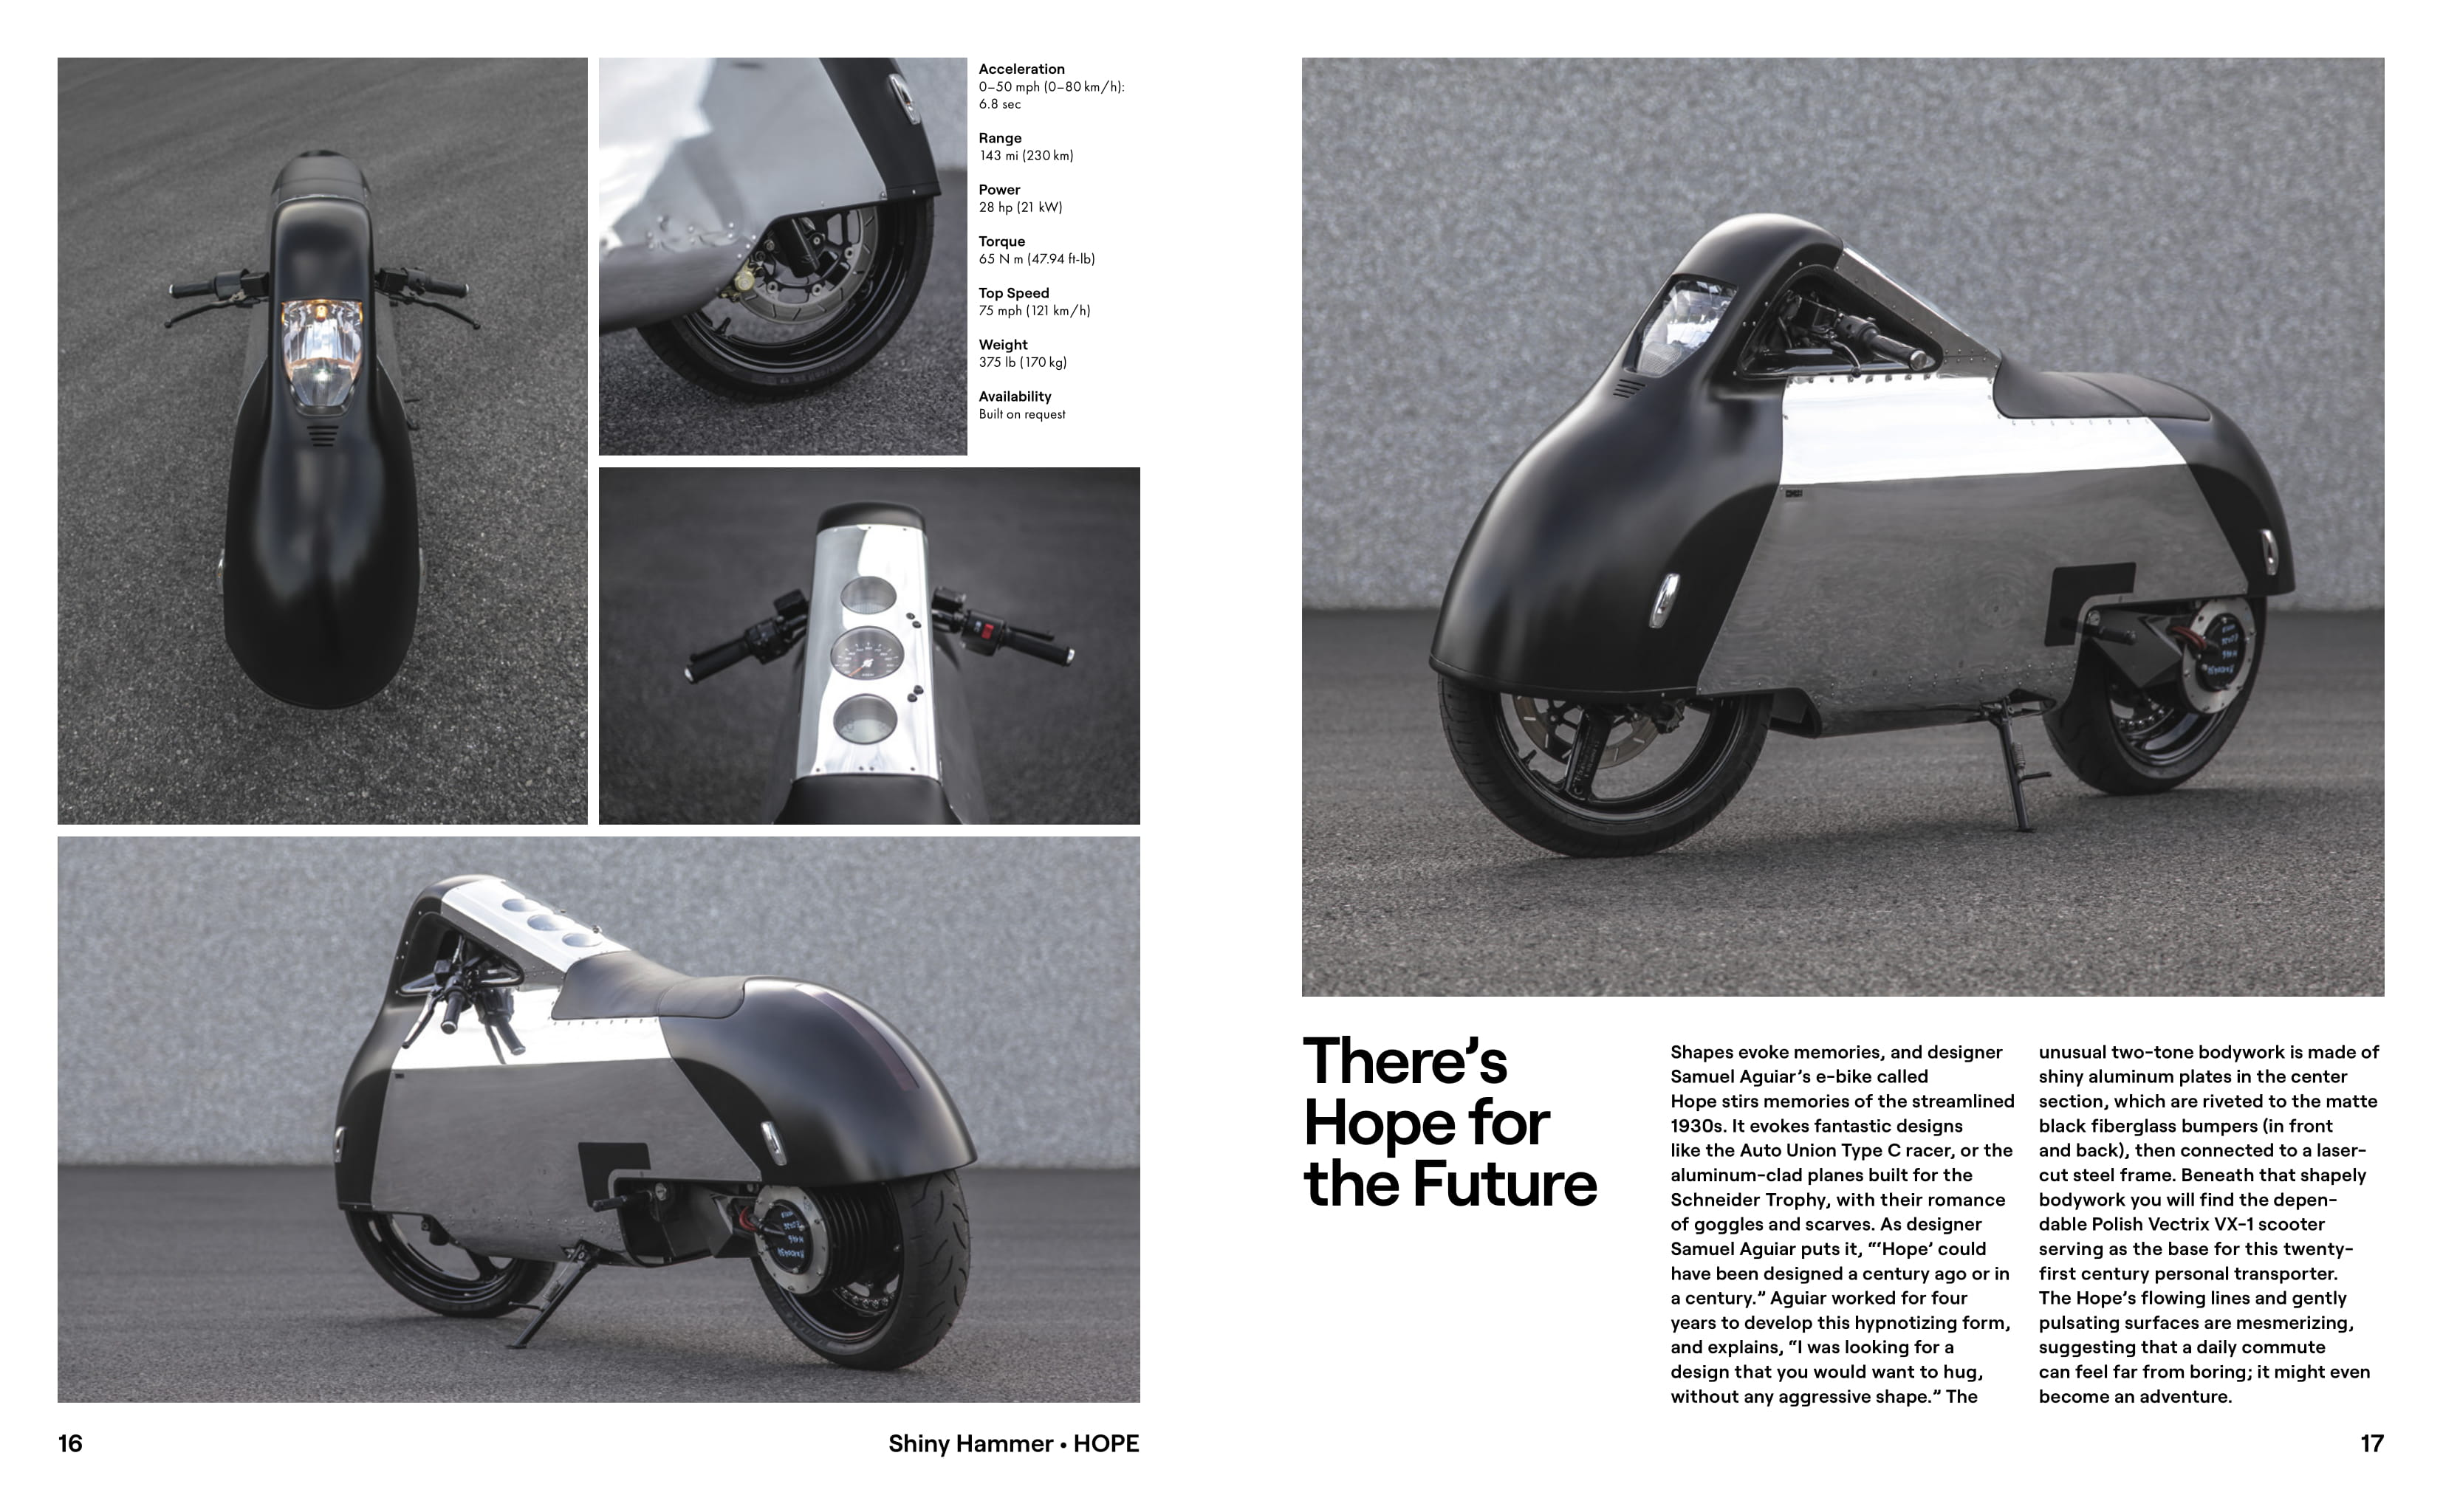 By Paul D'Orleans from The Current. New wheels for the post-petrol age copyright Gestalten 2018